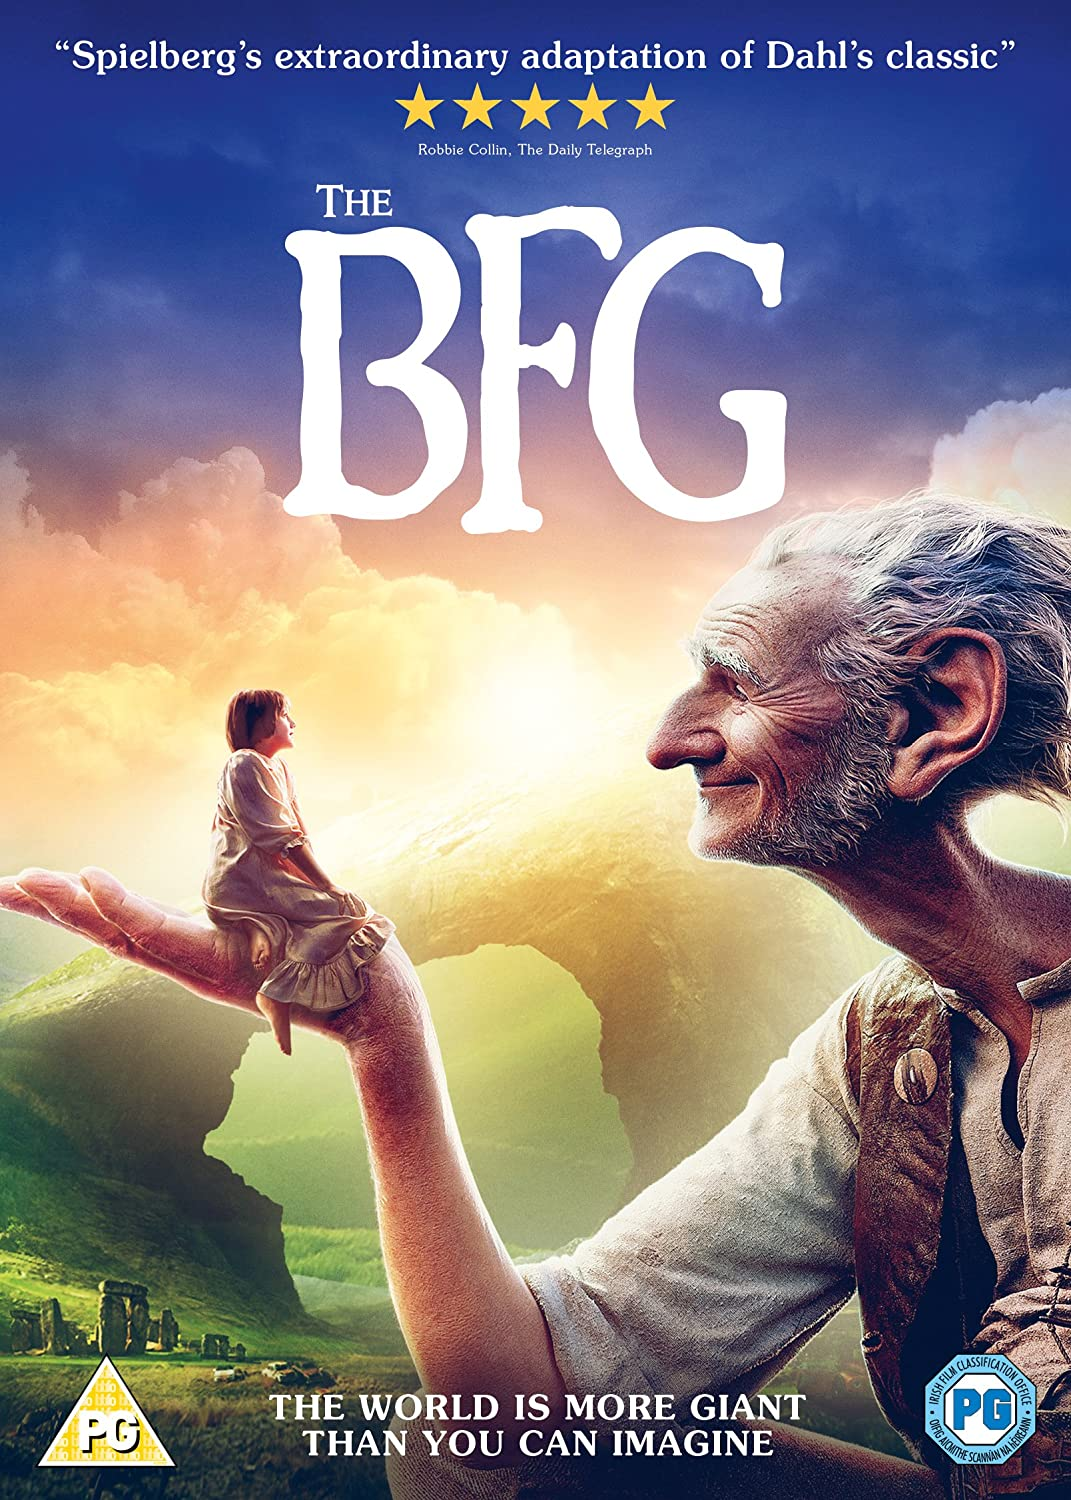 The BFG 23 May 2021 - Tulleys Drive In Cinema Diner